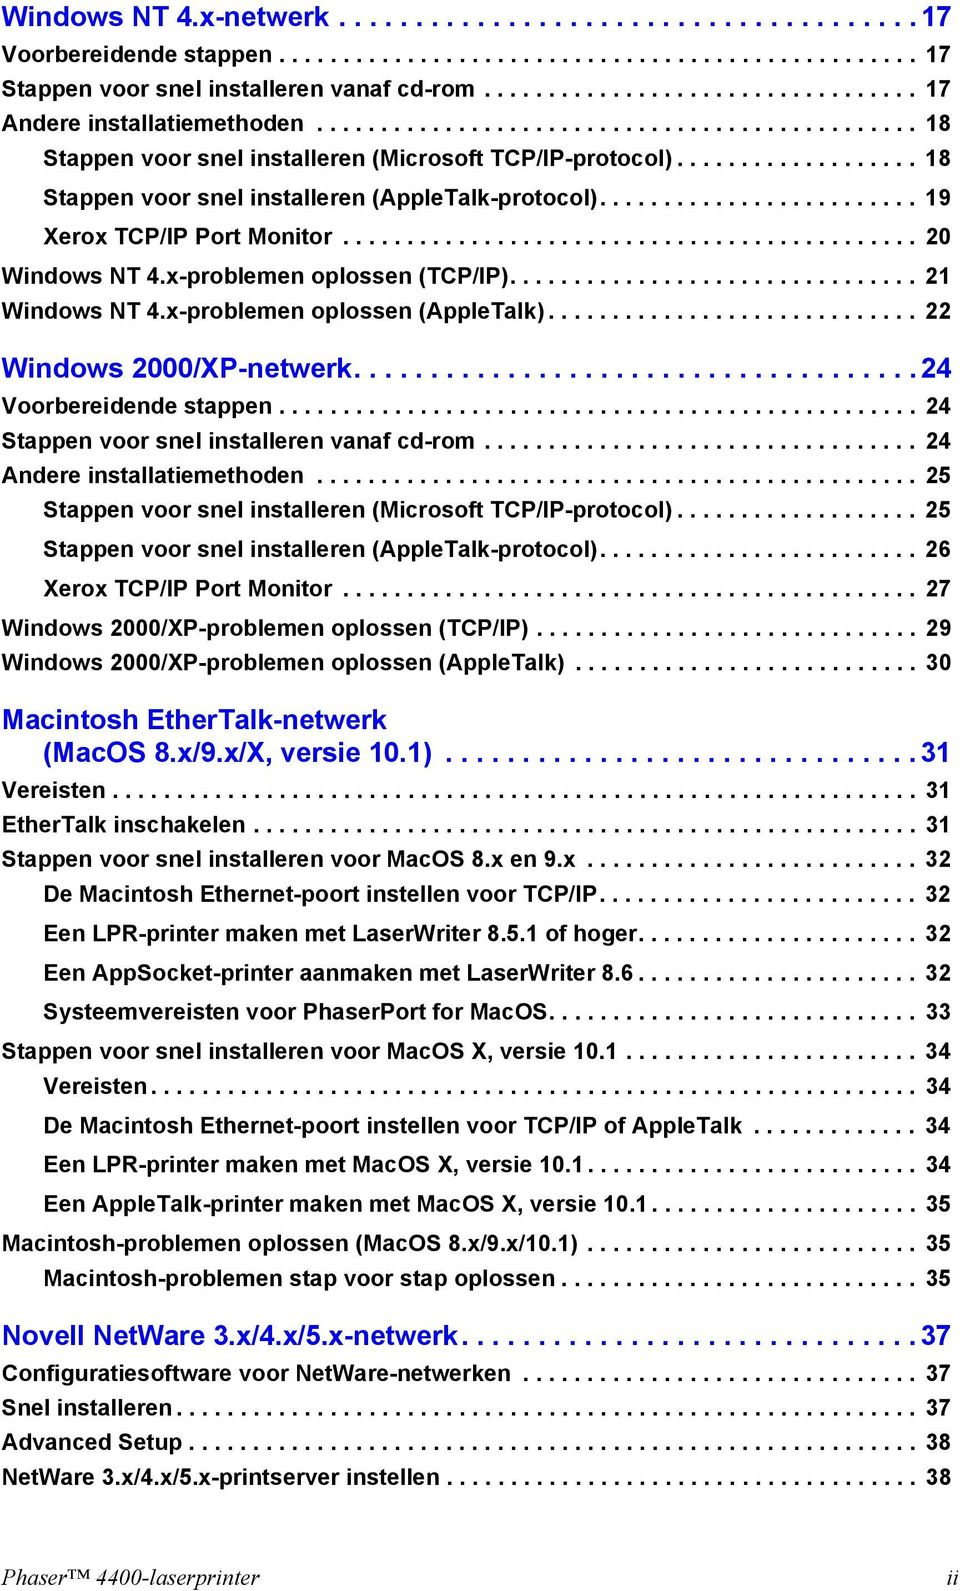 .................. 18 Stappen voor snel installeren (AppleTalk-protocol)......................... 19 Xerox TCP/IP Port Monitor............................................. 20 Windows NT 4.